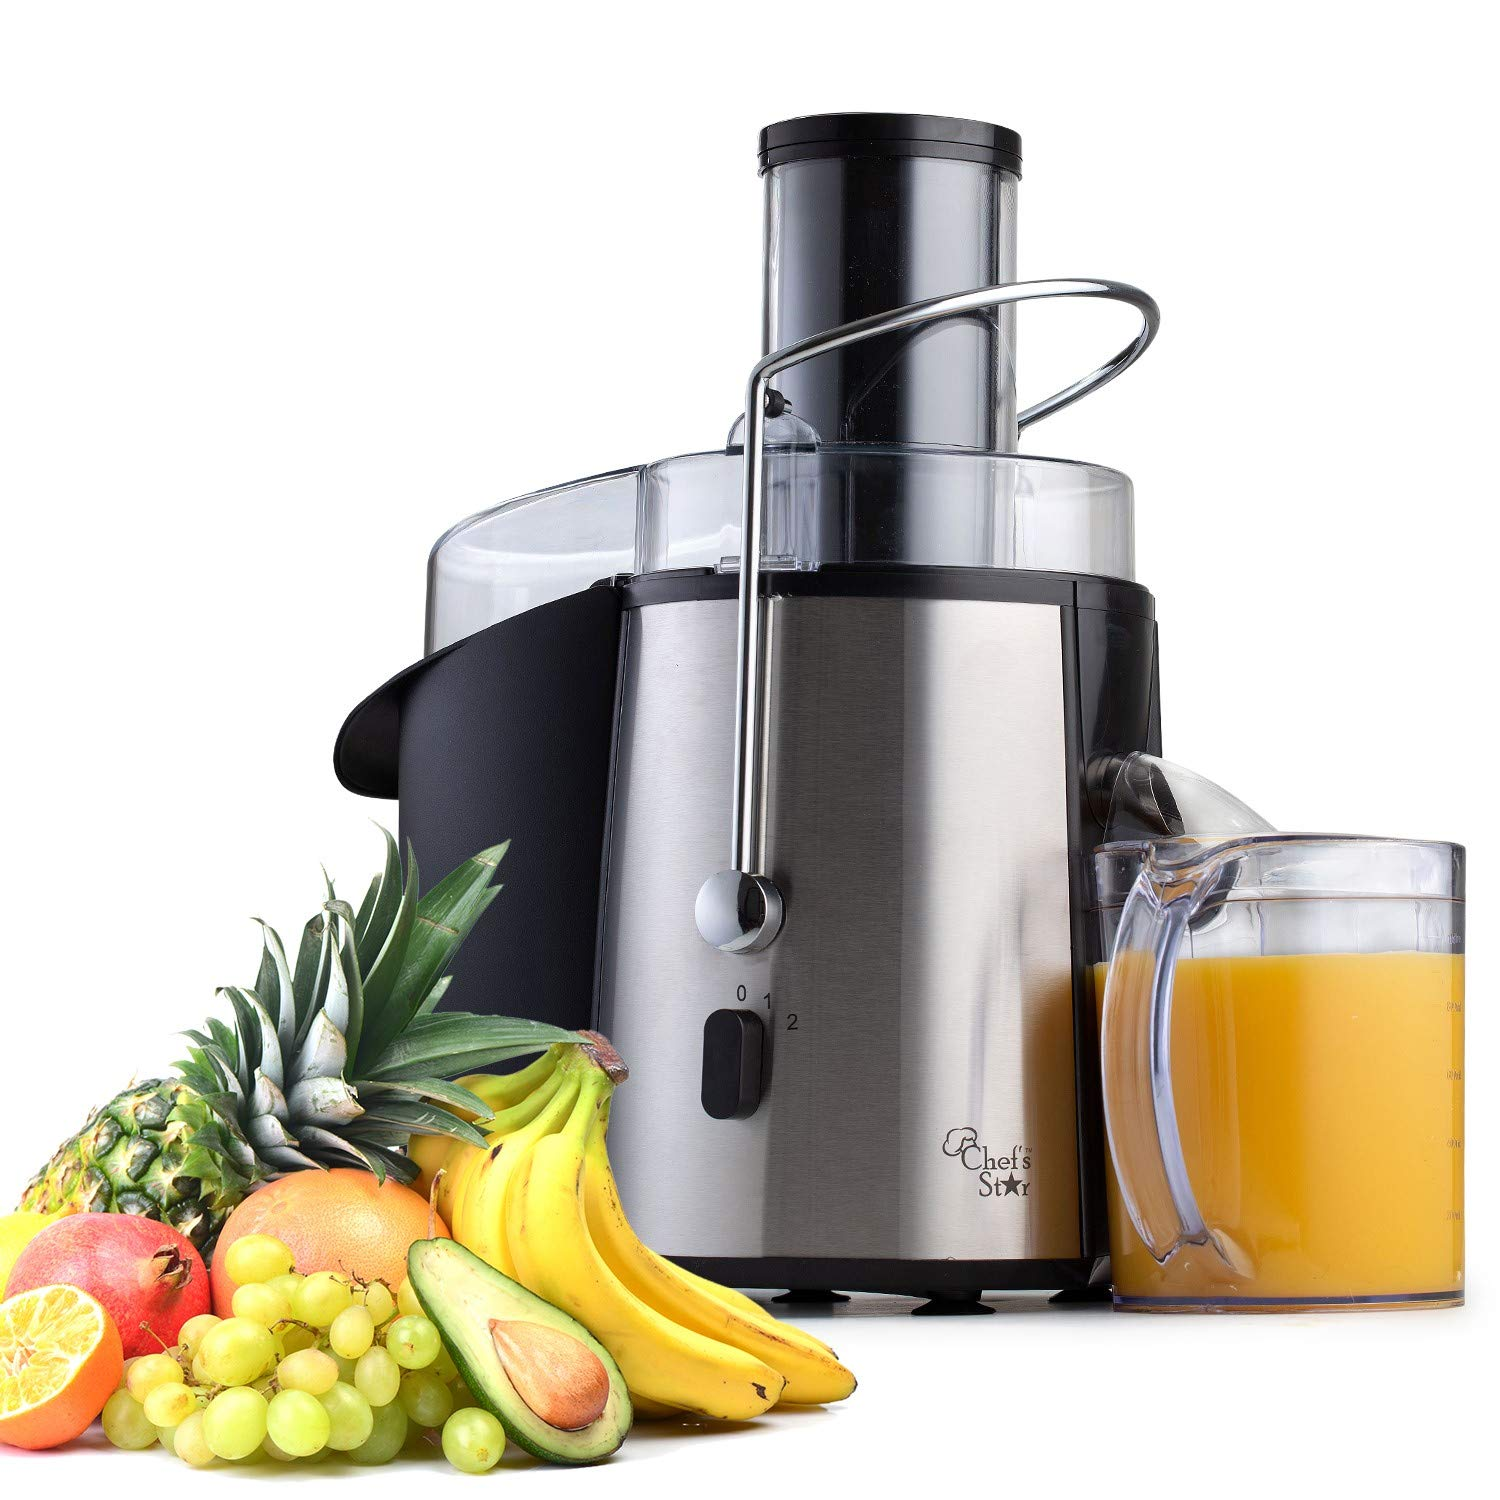 Juicer Extractor Machine, Electric Fruit & Vegetable Juice Maker Quiet 700 Watt Power Motor, Wide Mouth For Whole Fruits & Vegetables Easy To Clean, Best For Home & Kitchen - BPA Free